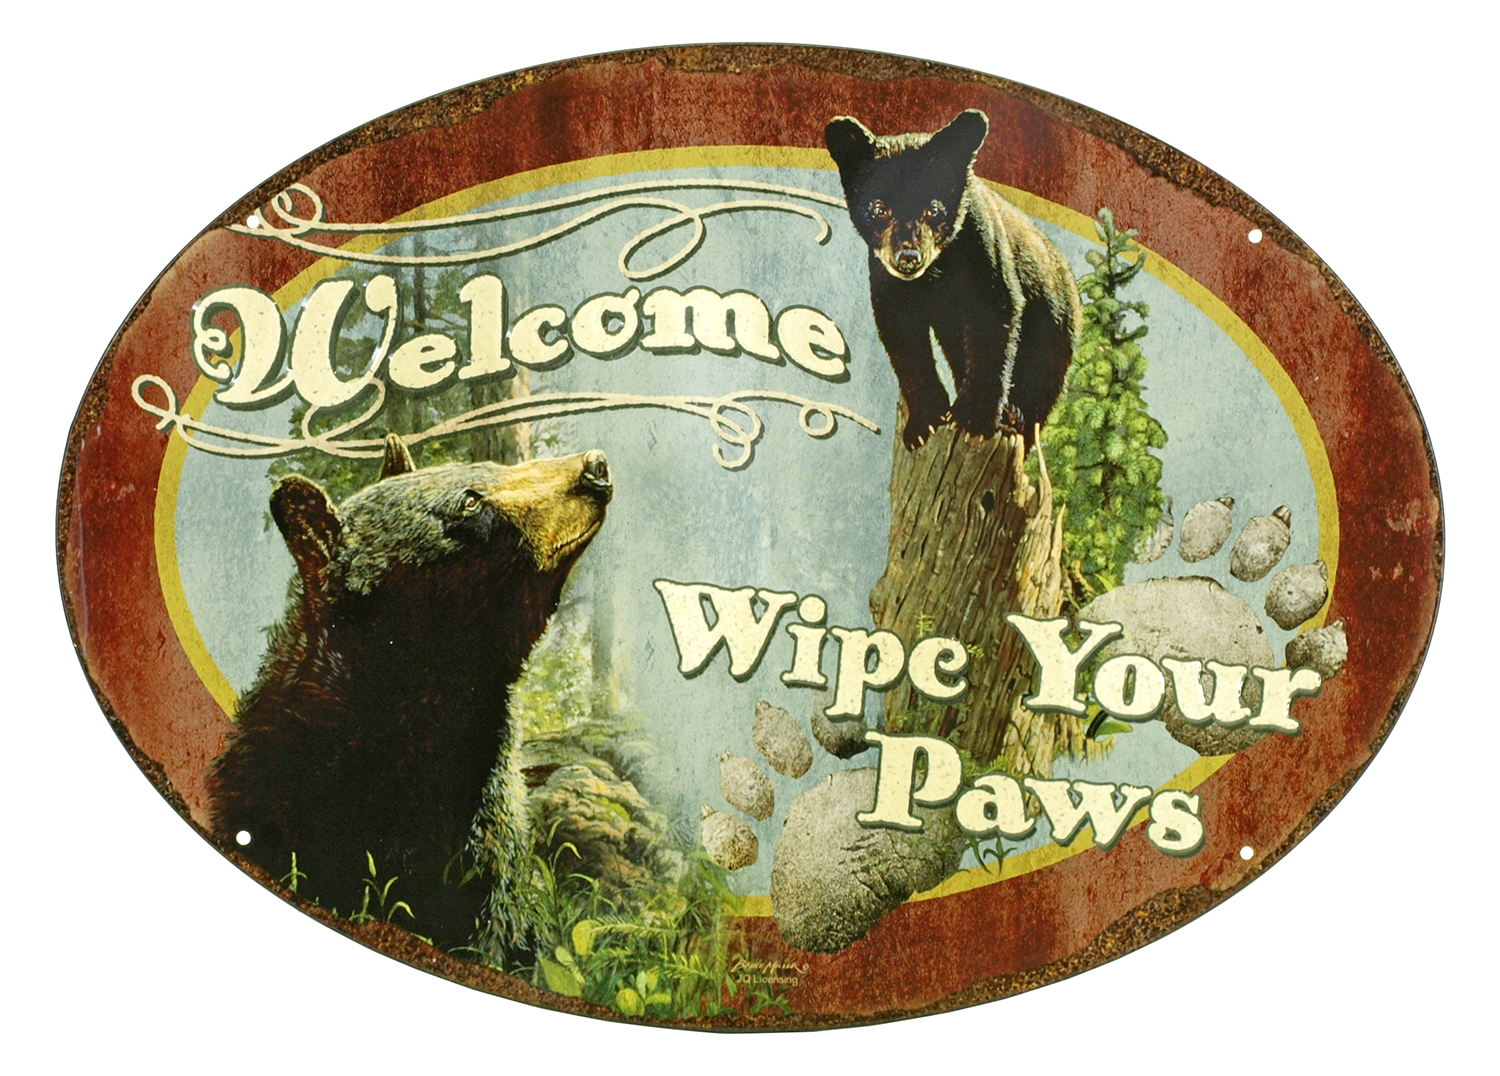 Welcome, Wipe Your Paws Oval Metal Sign